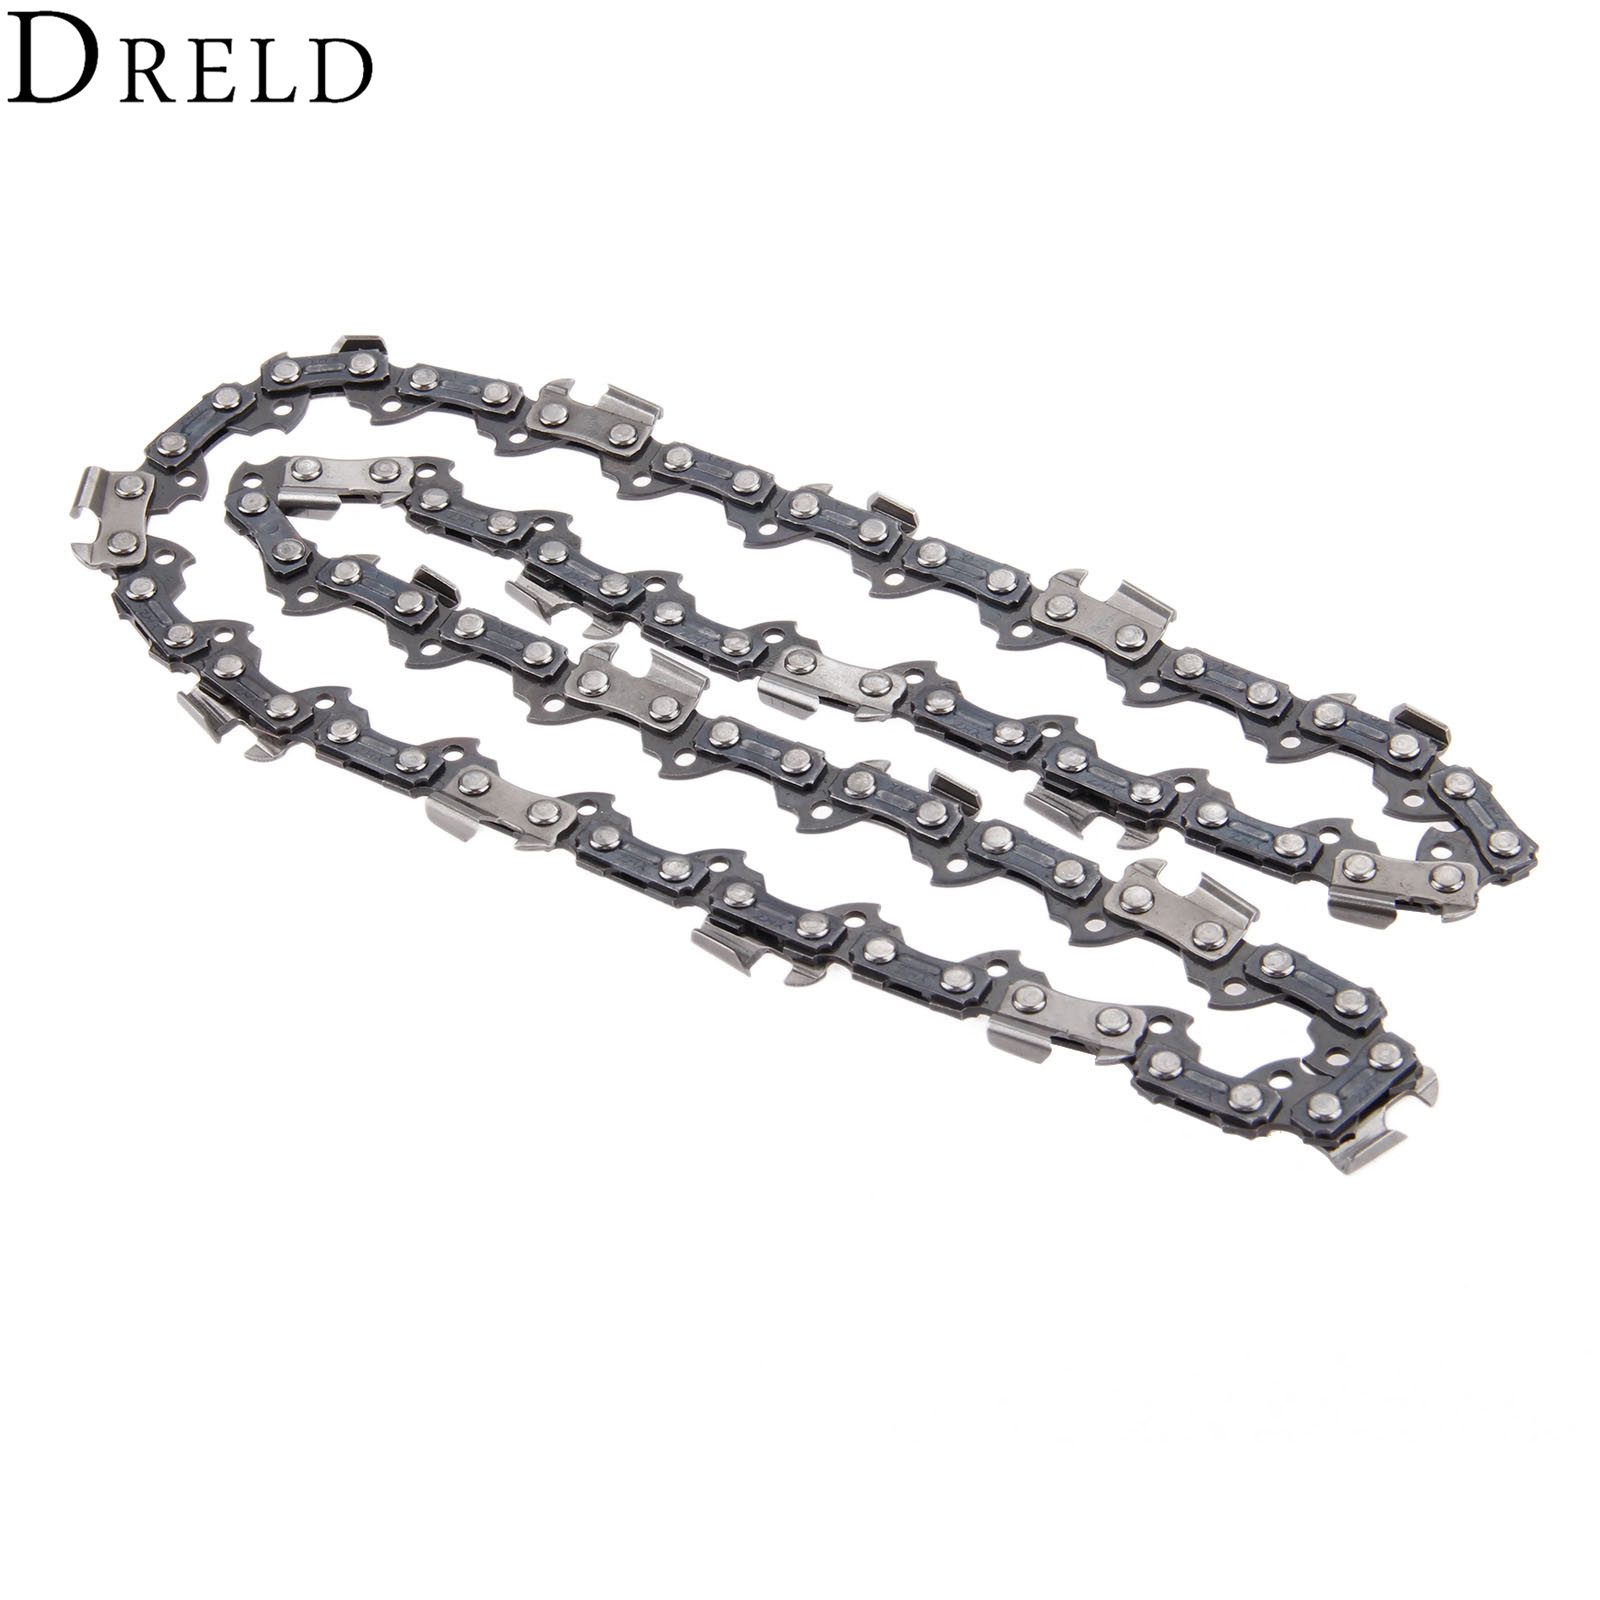 DRELD 10 Metal Chainsaw 40 DL Drive Links 3/8'' Chain Saw Blade Sharp Blade Pitch Replacement Chainsaw Parts for Wood Cutting 2 pcs gear sprockets drive replacement chainsaw chain drive sprocket 221514 8 for makita 5016b 5012b electric chain saw